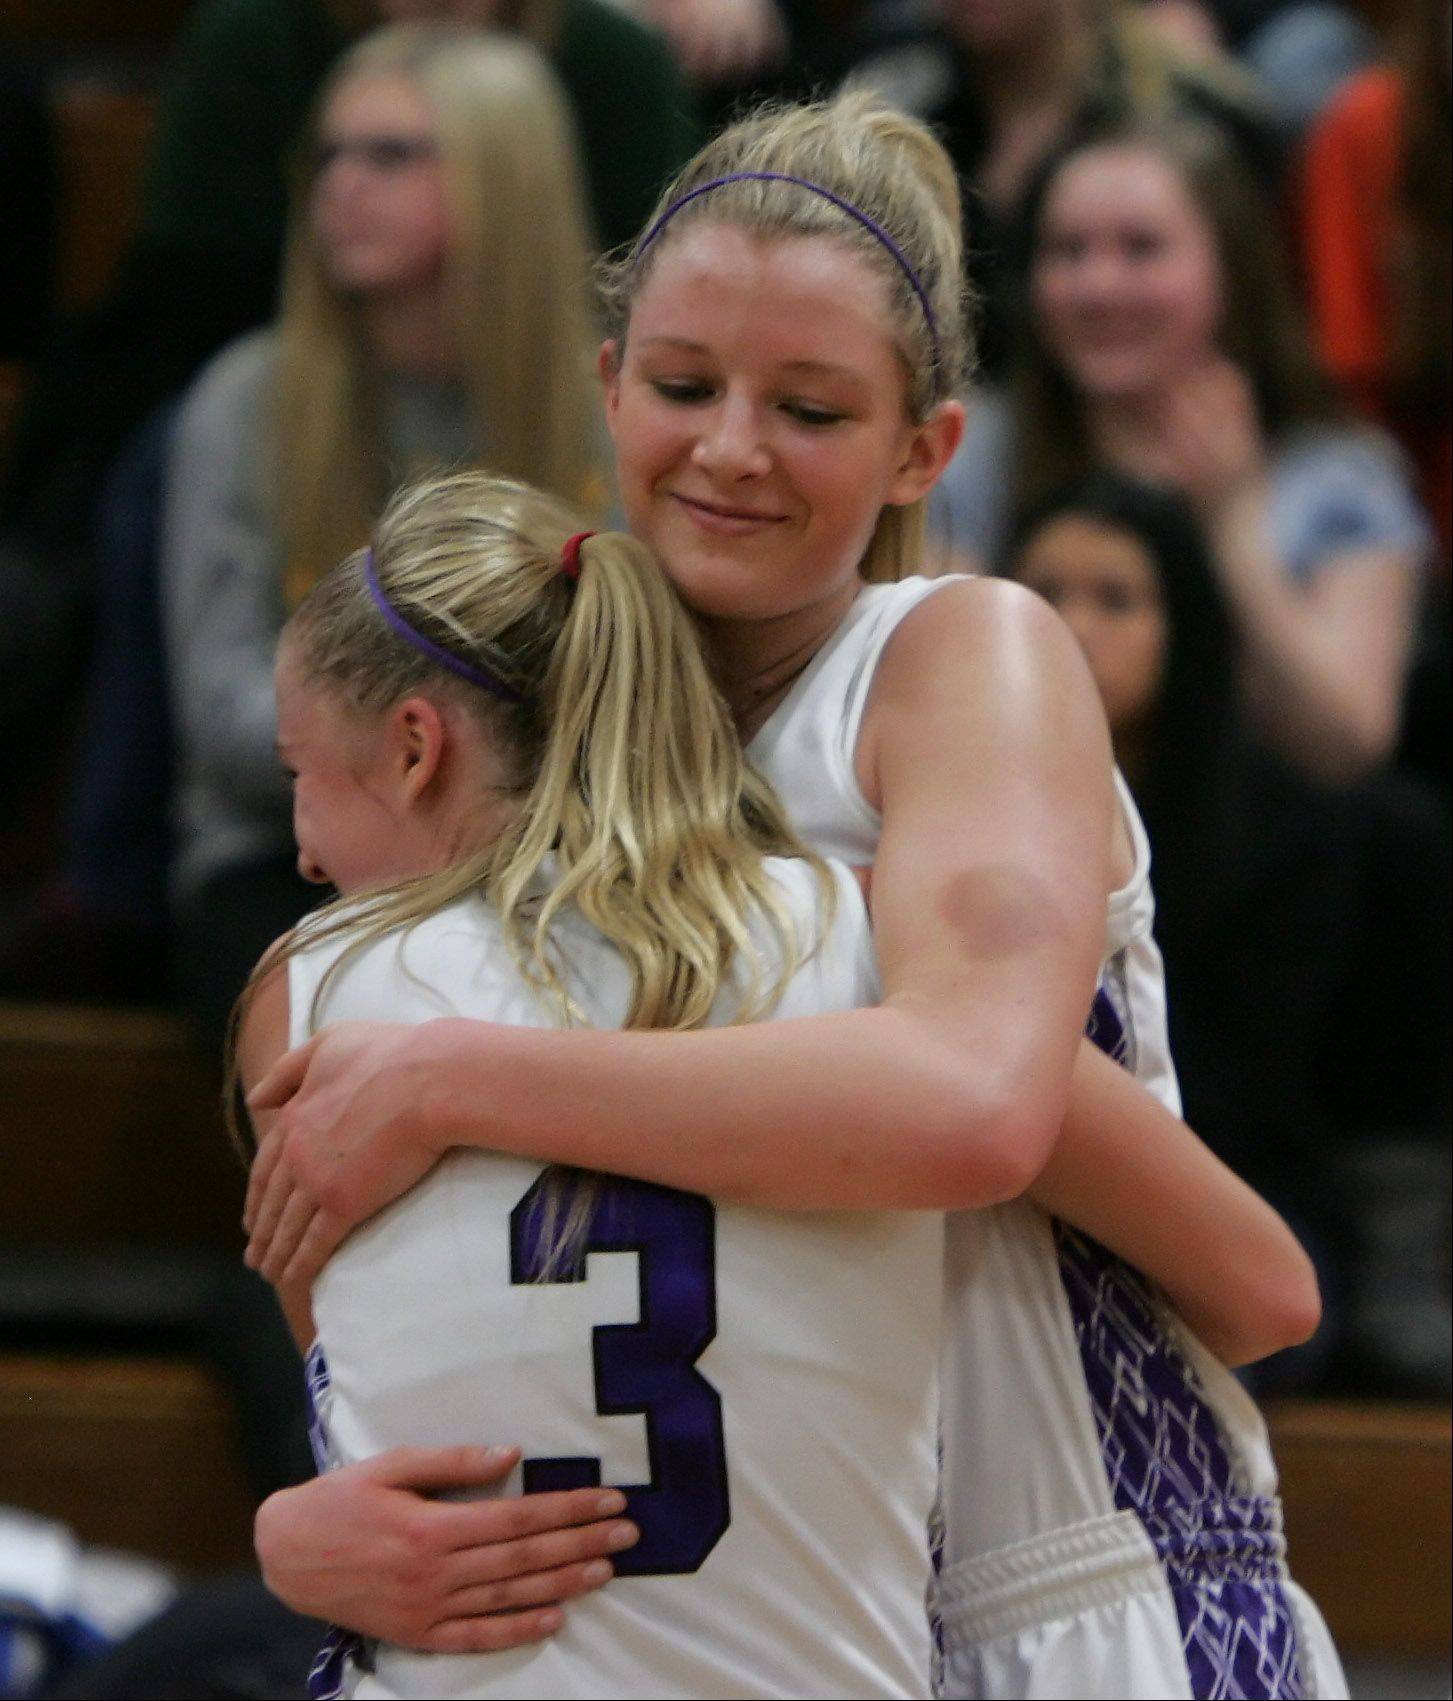 Rolling Meadows players Jackie Kemph, left, and Jenny Vliet hug after winning the game against Stevenson during the girls basketball game between Rolling Meadows and Stevenson in the Class 4A sectional semifinals at Libertyville High School Monday.